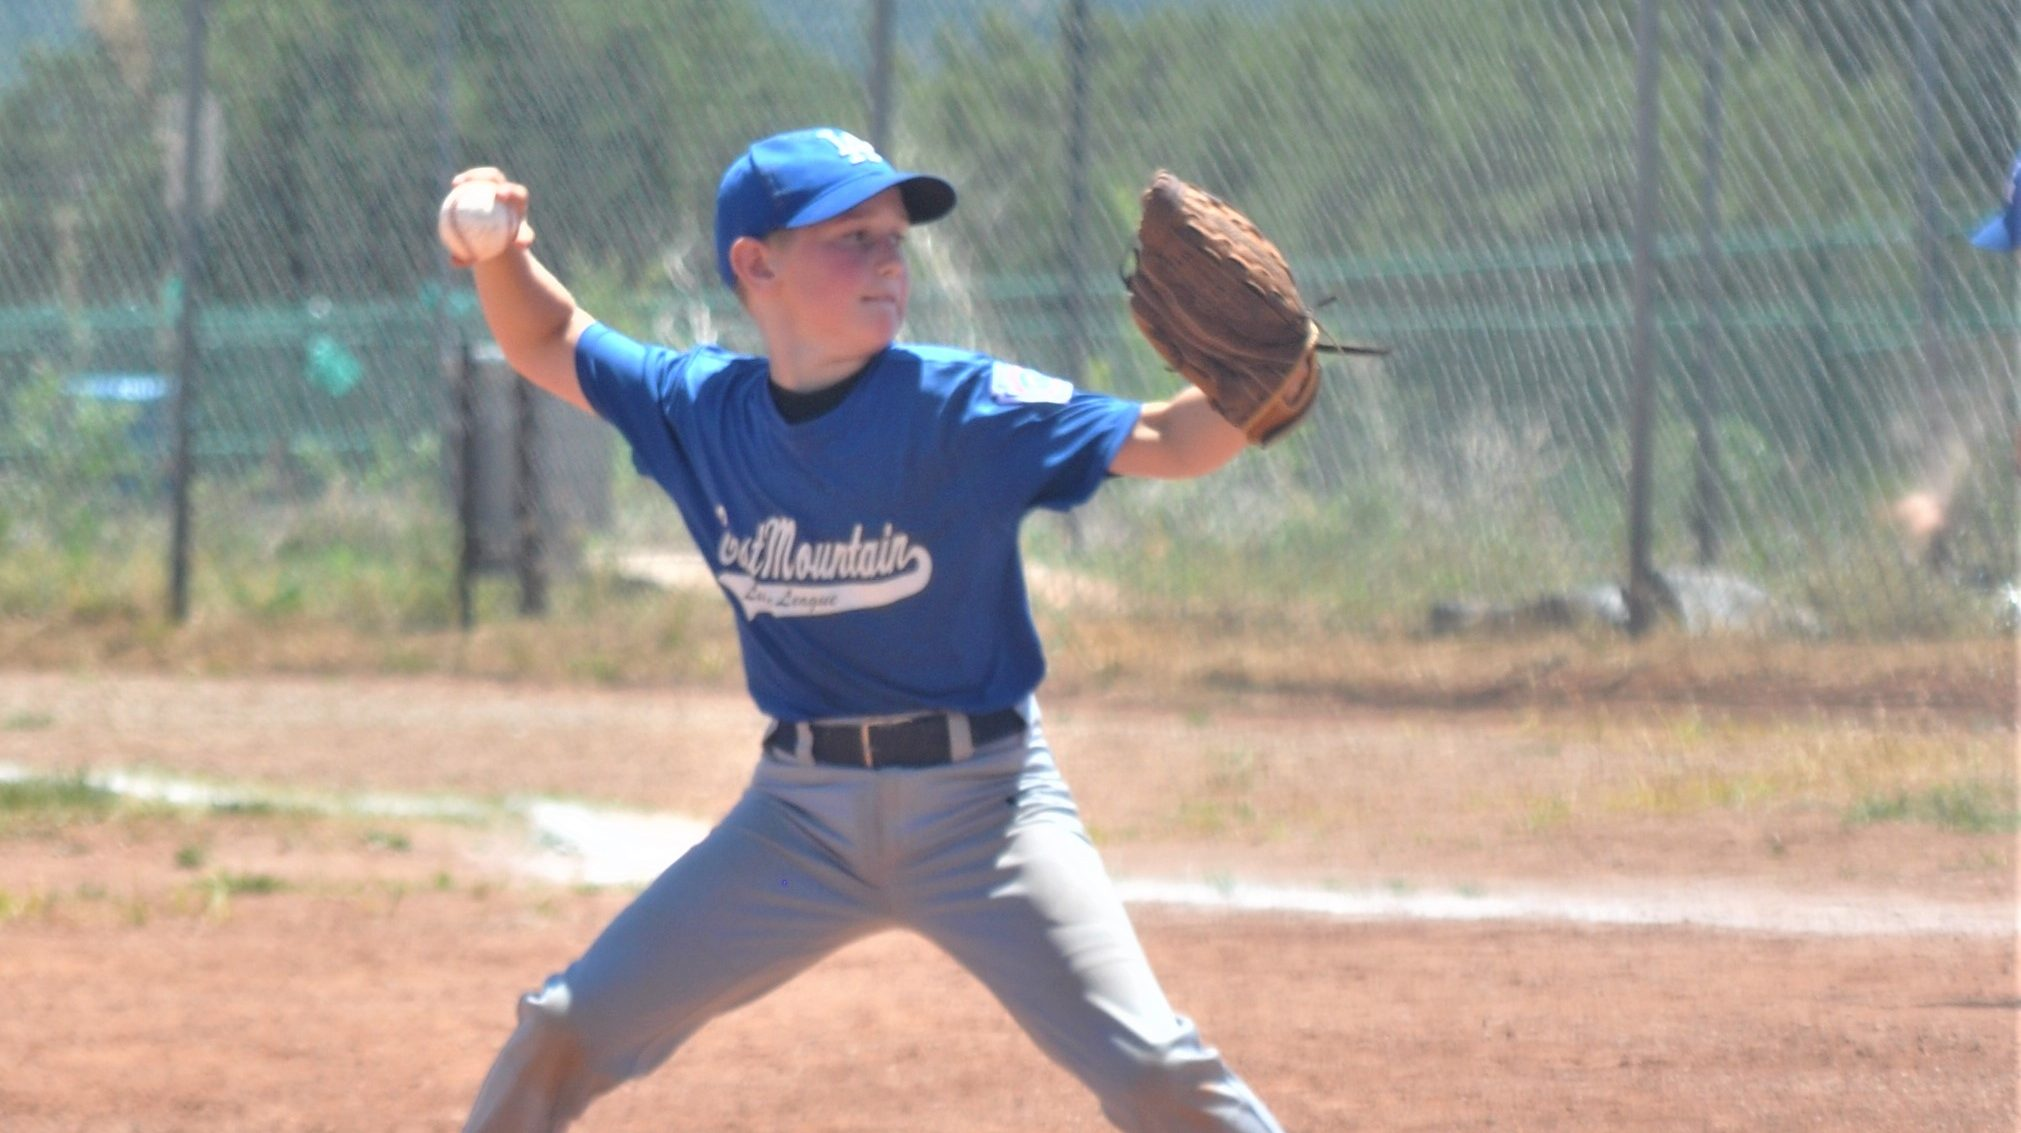 East Mountain Little League wraps up season with championships